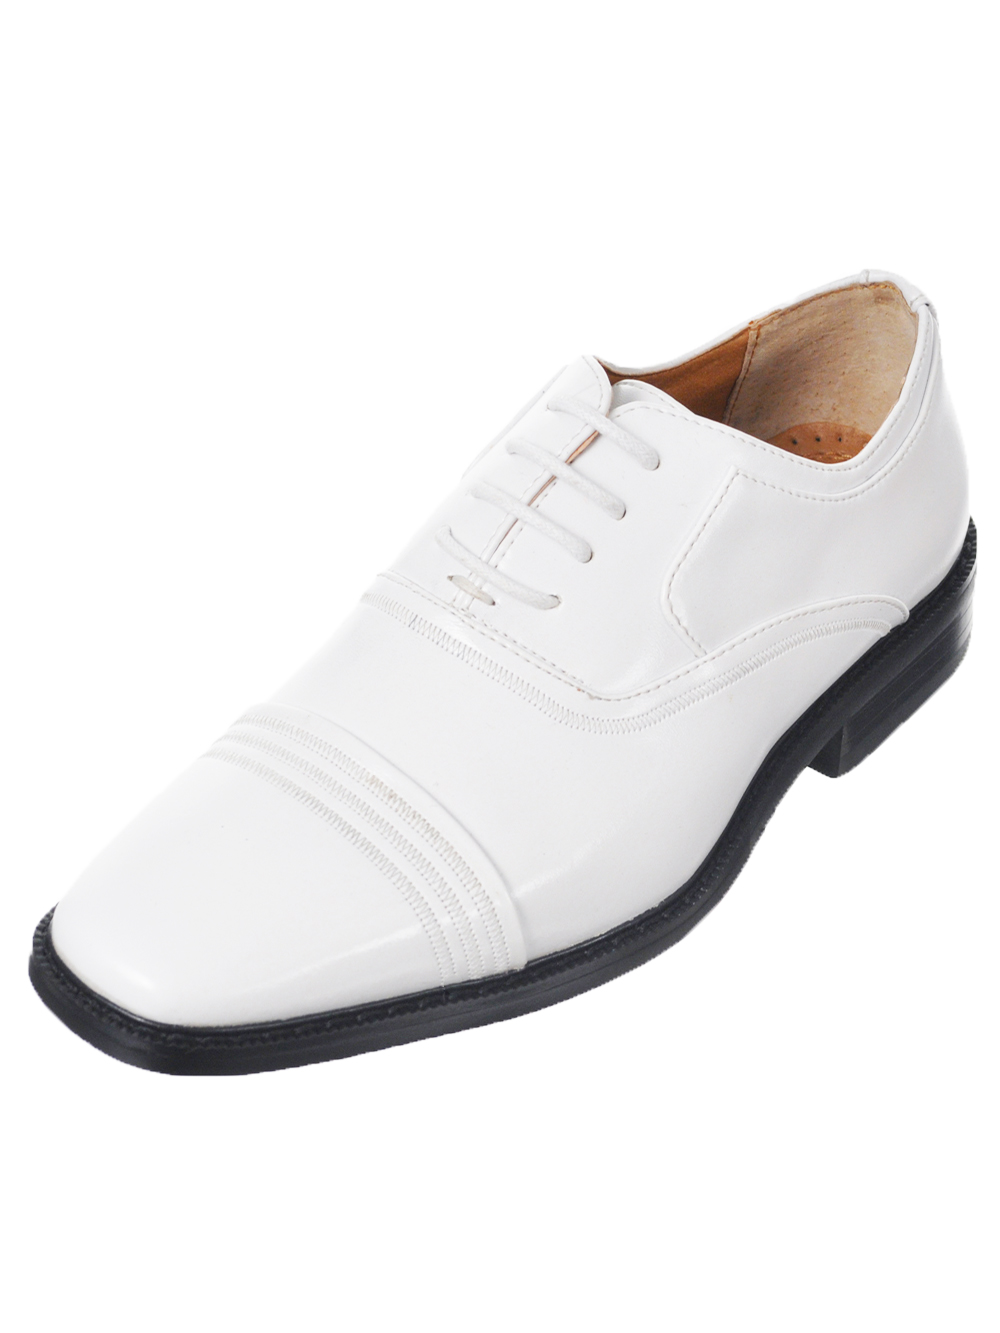 "Stacy Adams Boys' ""Bingham"" Dress Shoes (Youth Sizes 13 7) by Stacy Adams"